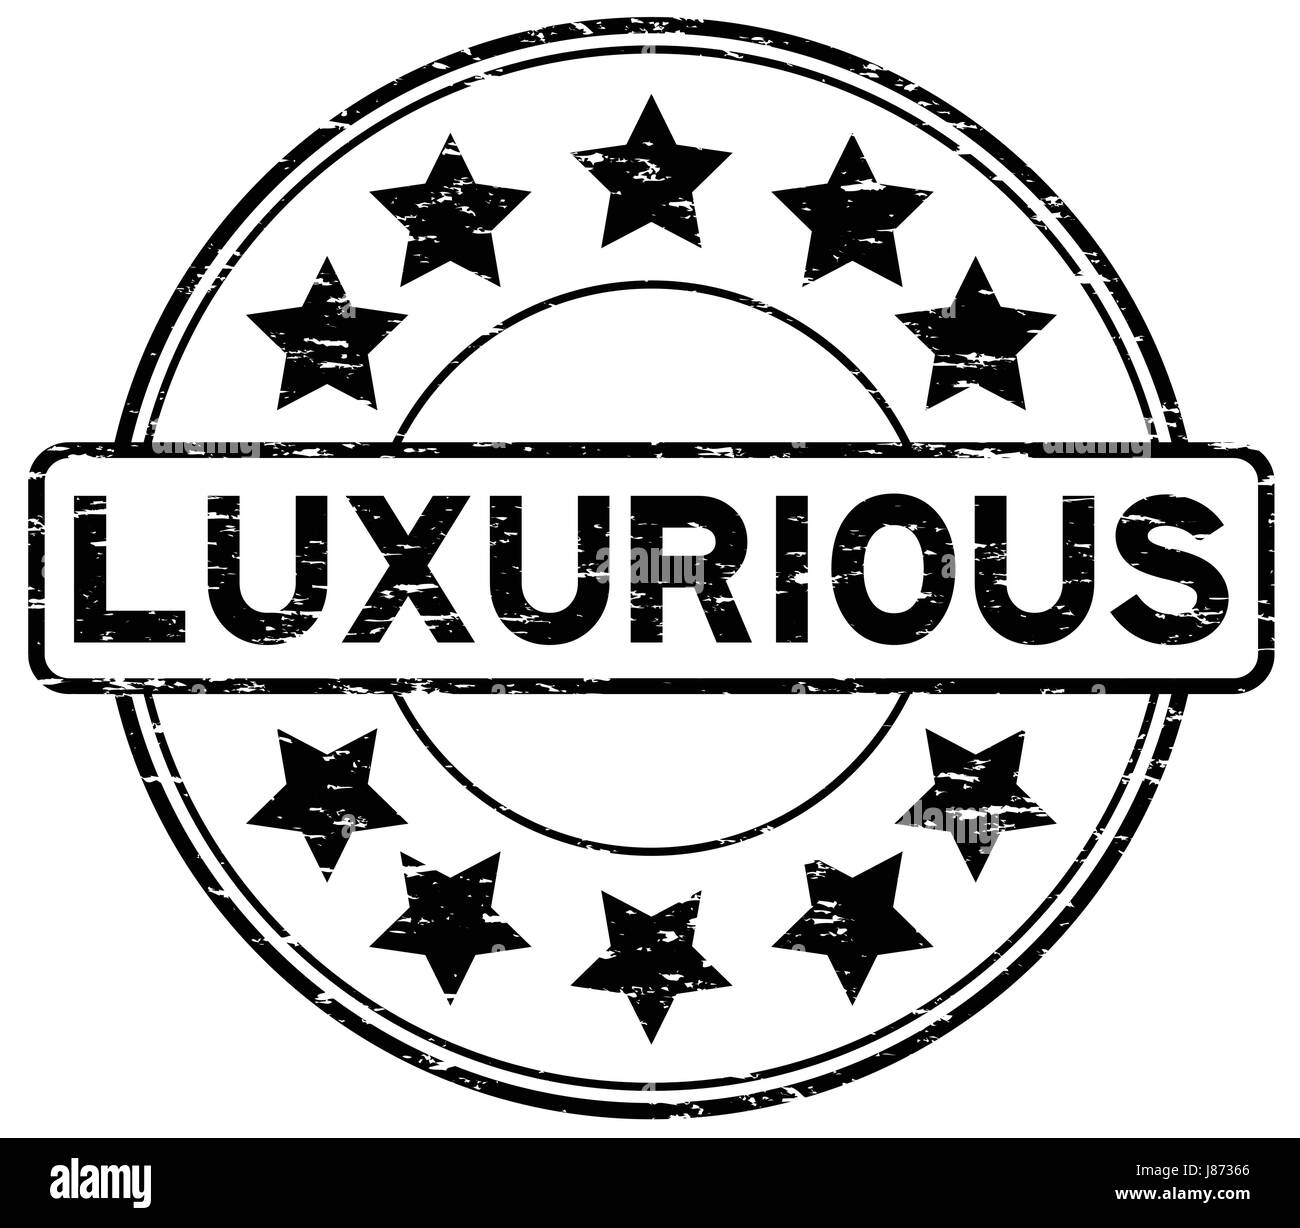 Grunge black luxurious with star icon round rubber seal stamp - Stock Image